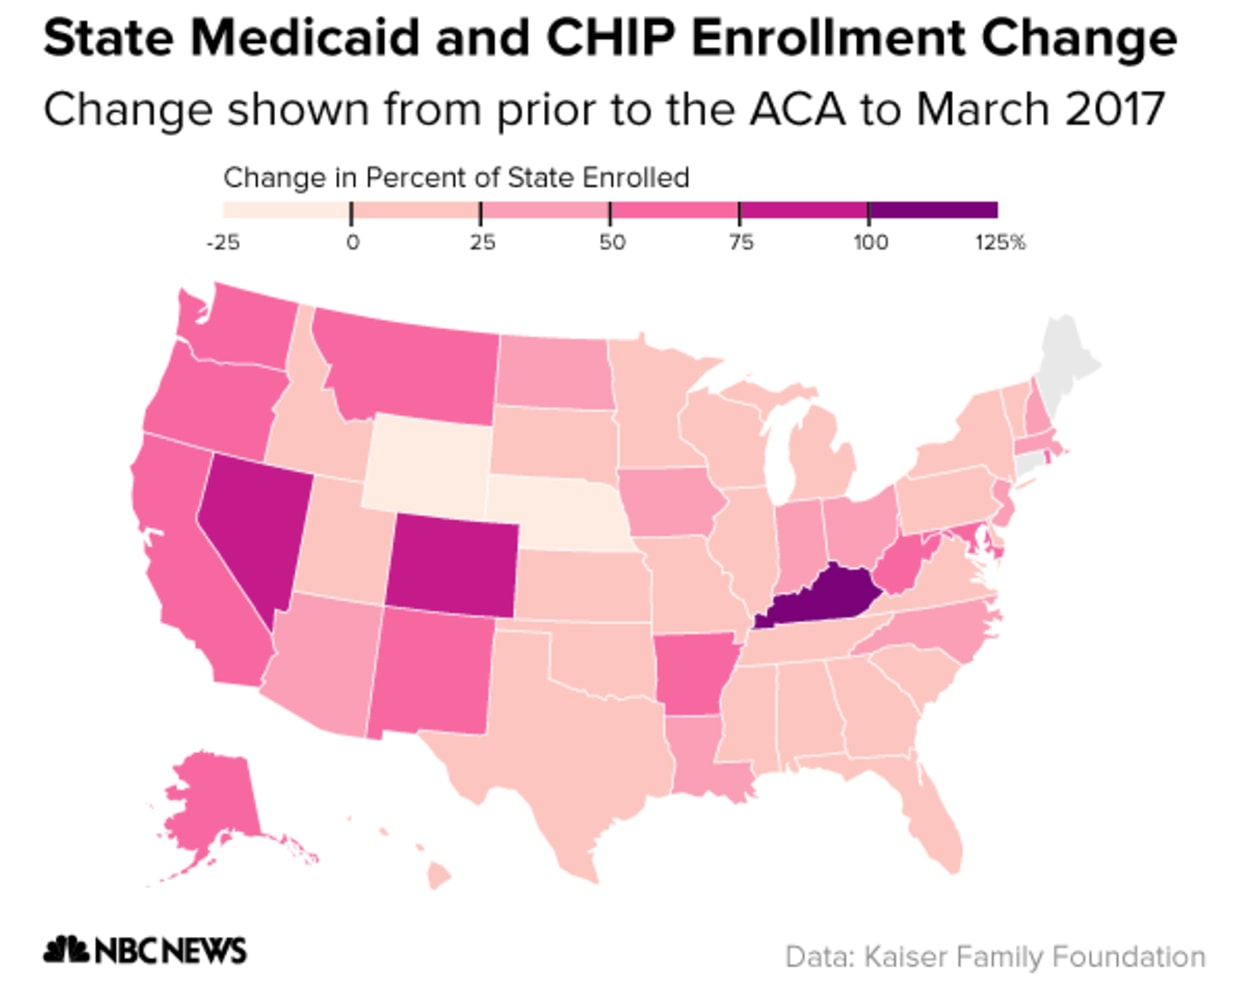 But Those States Will Also Experience Cuts All States That Did Not Expand Medicaid Will See Cuts To The Program Because Of Substantial Changes To The